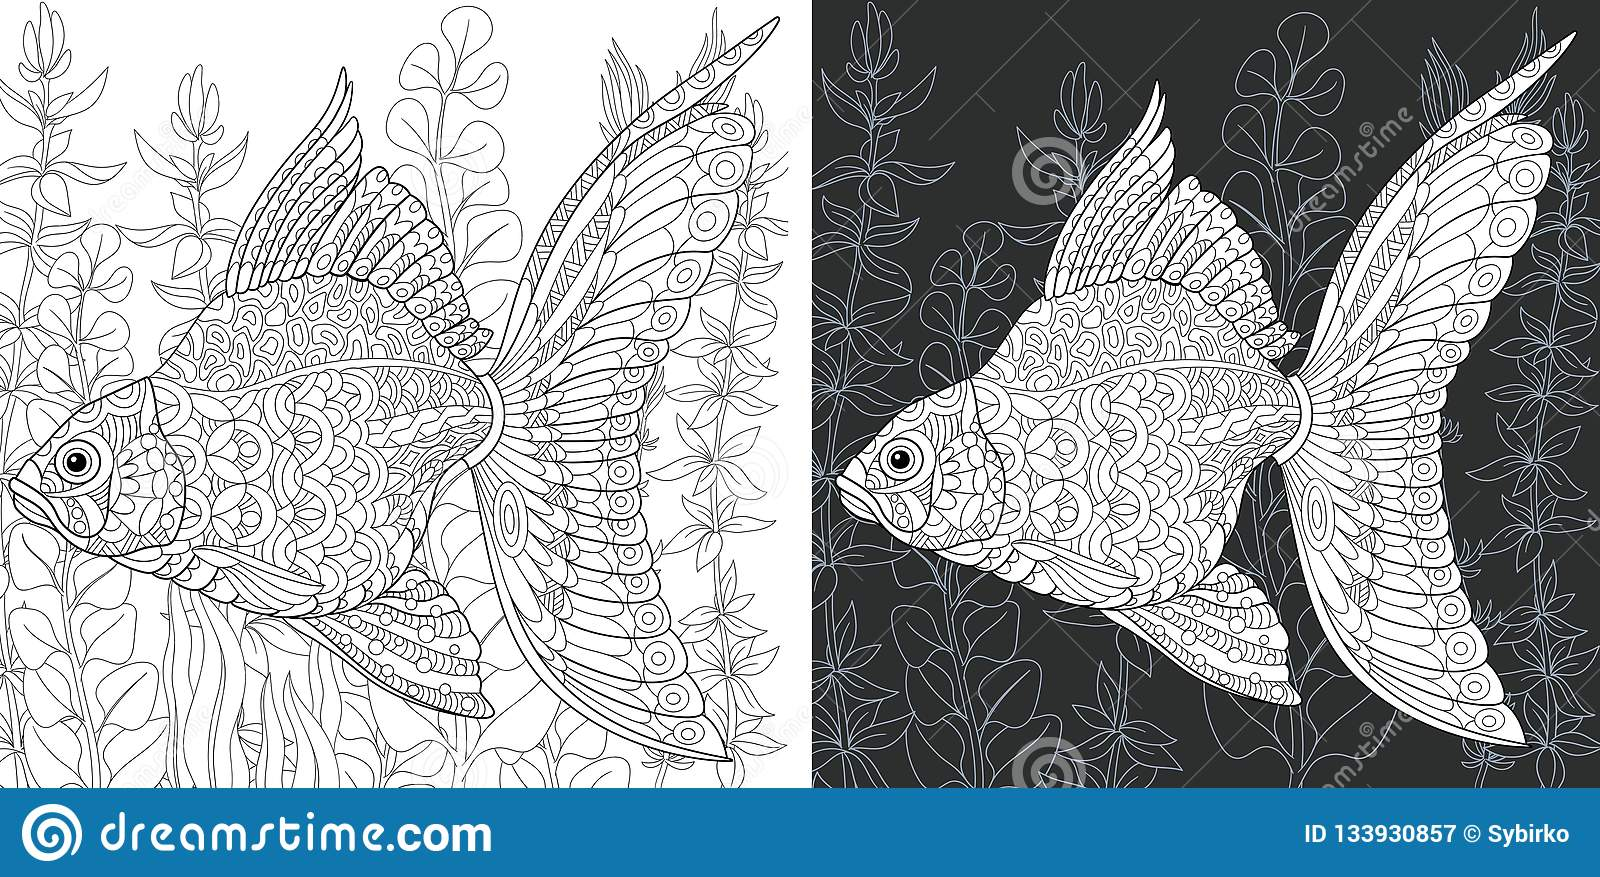 Coloring Pages With Gold Fish Stock Vector - Illustration of black ...